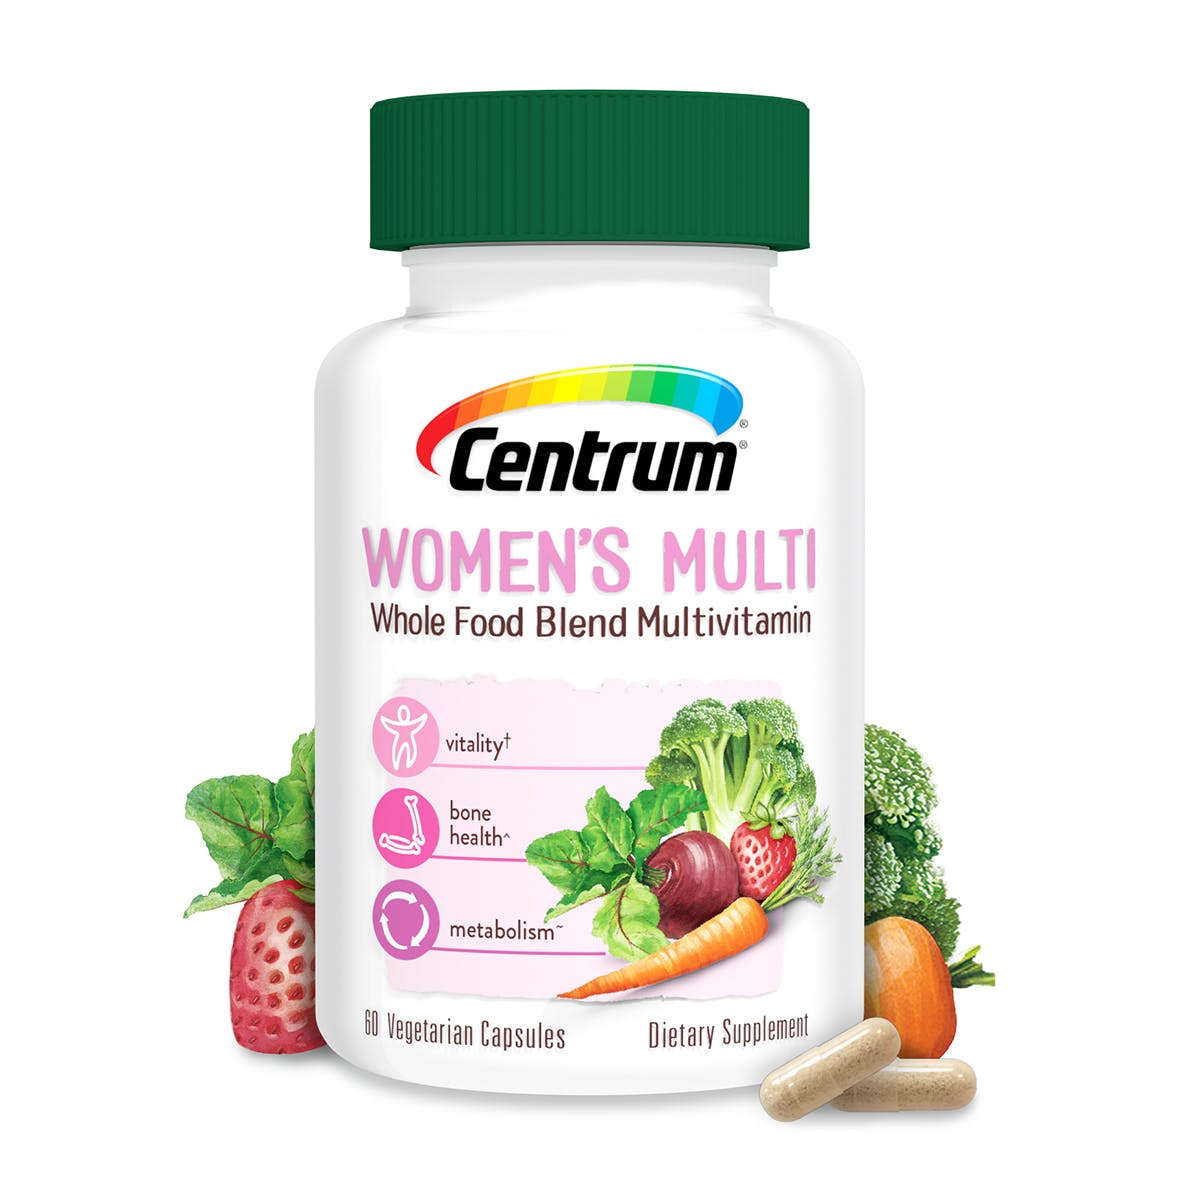 Centrum Women's Whole Food Blend Multivitamin